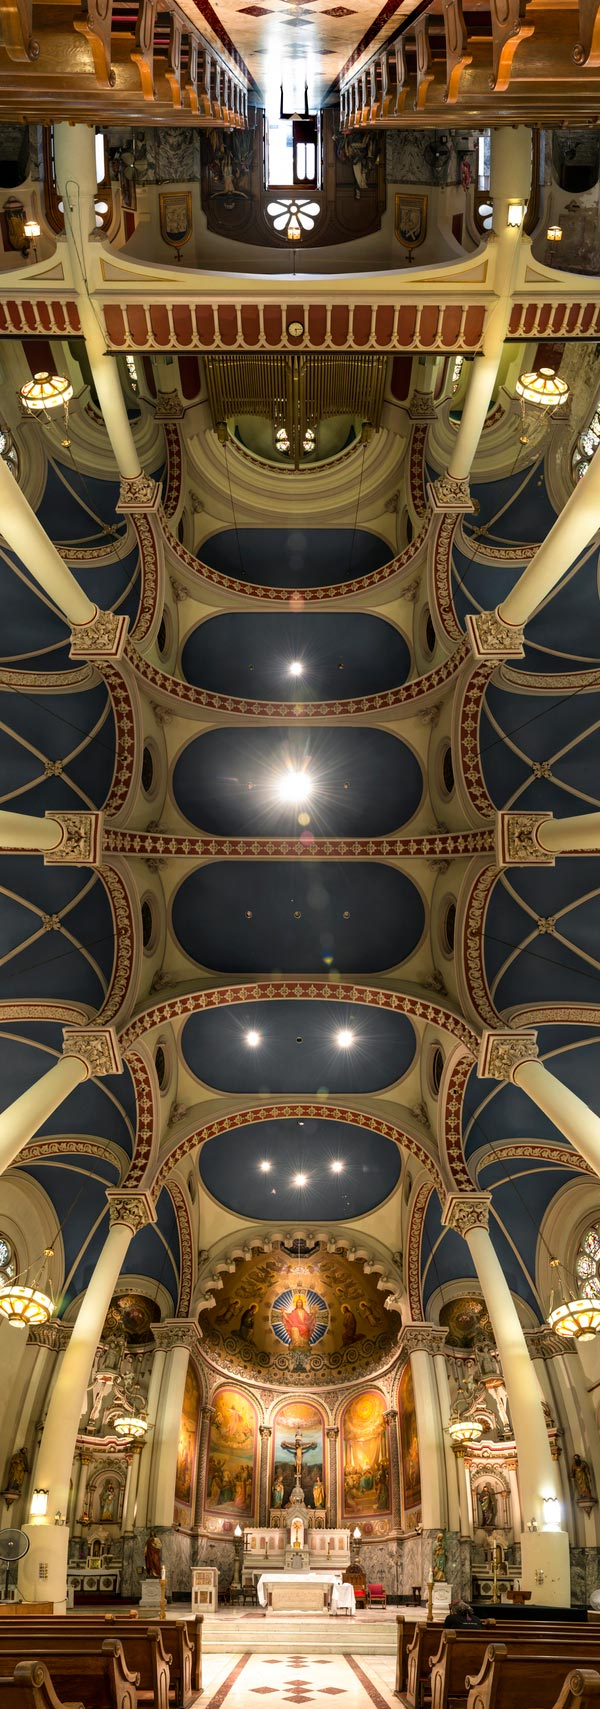 vertical-panoramas-of-church-ceilings-5